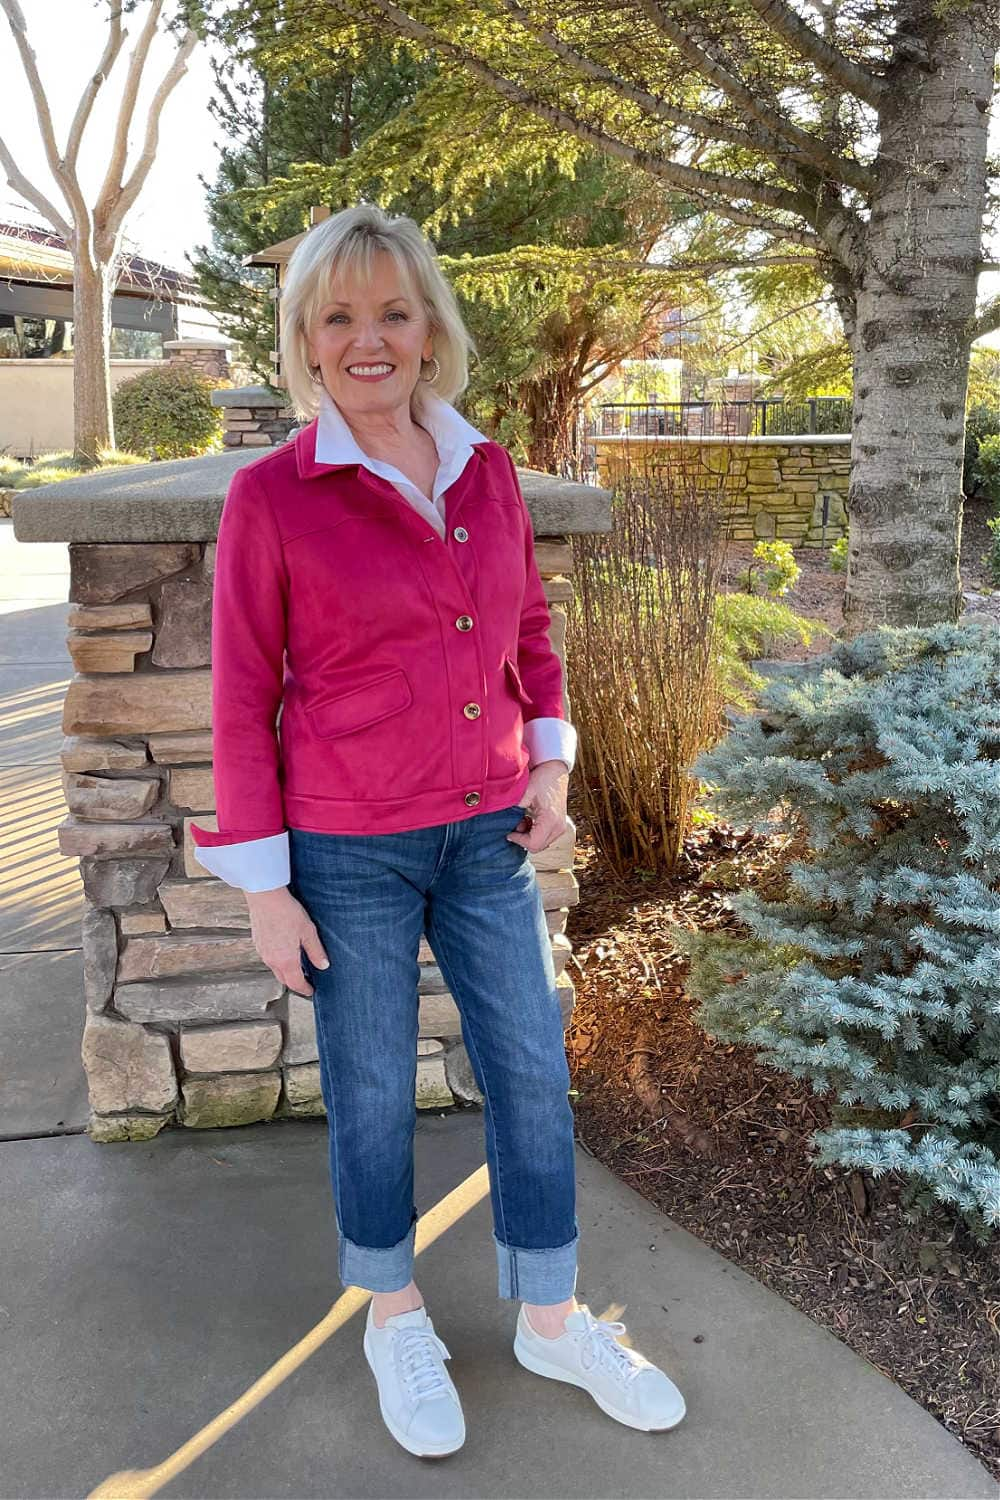 woman wearing pink jacket, white shirt, cuffed jeans and white sneakers